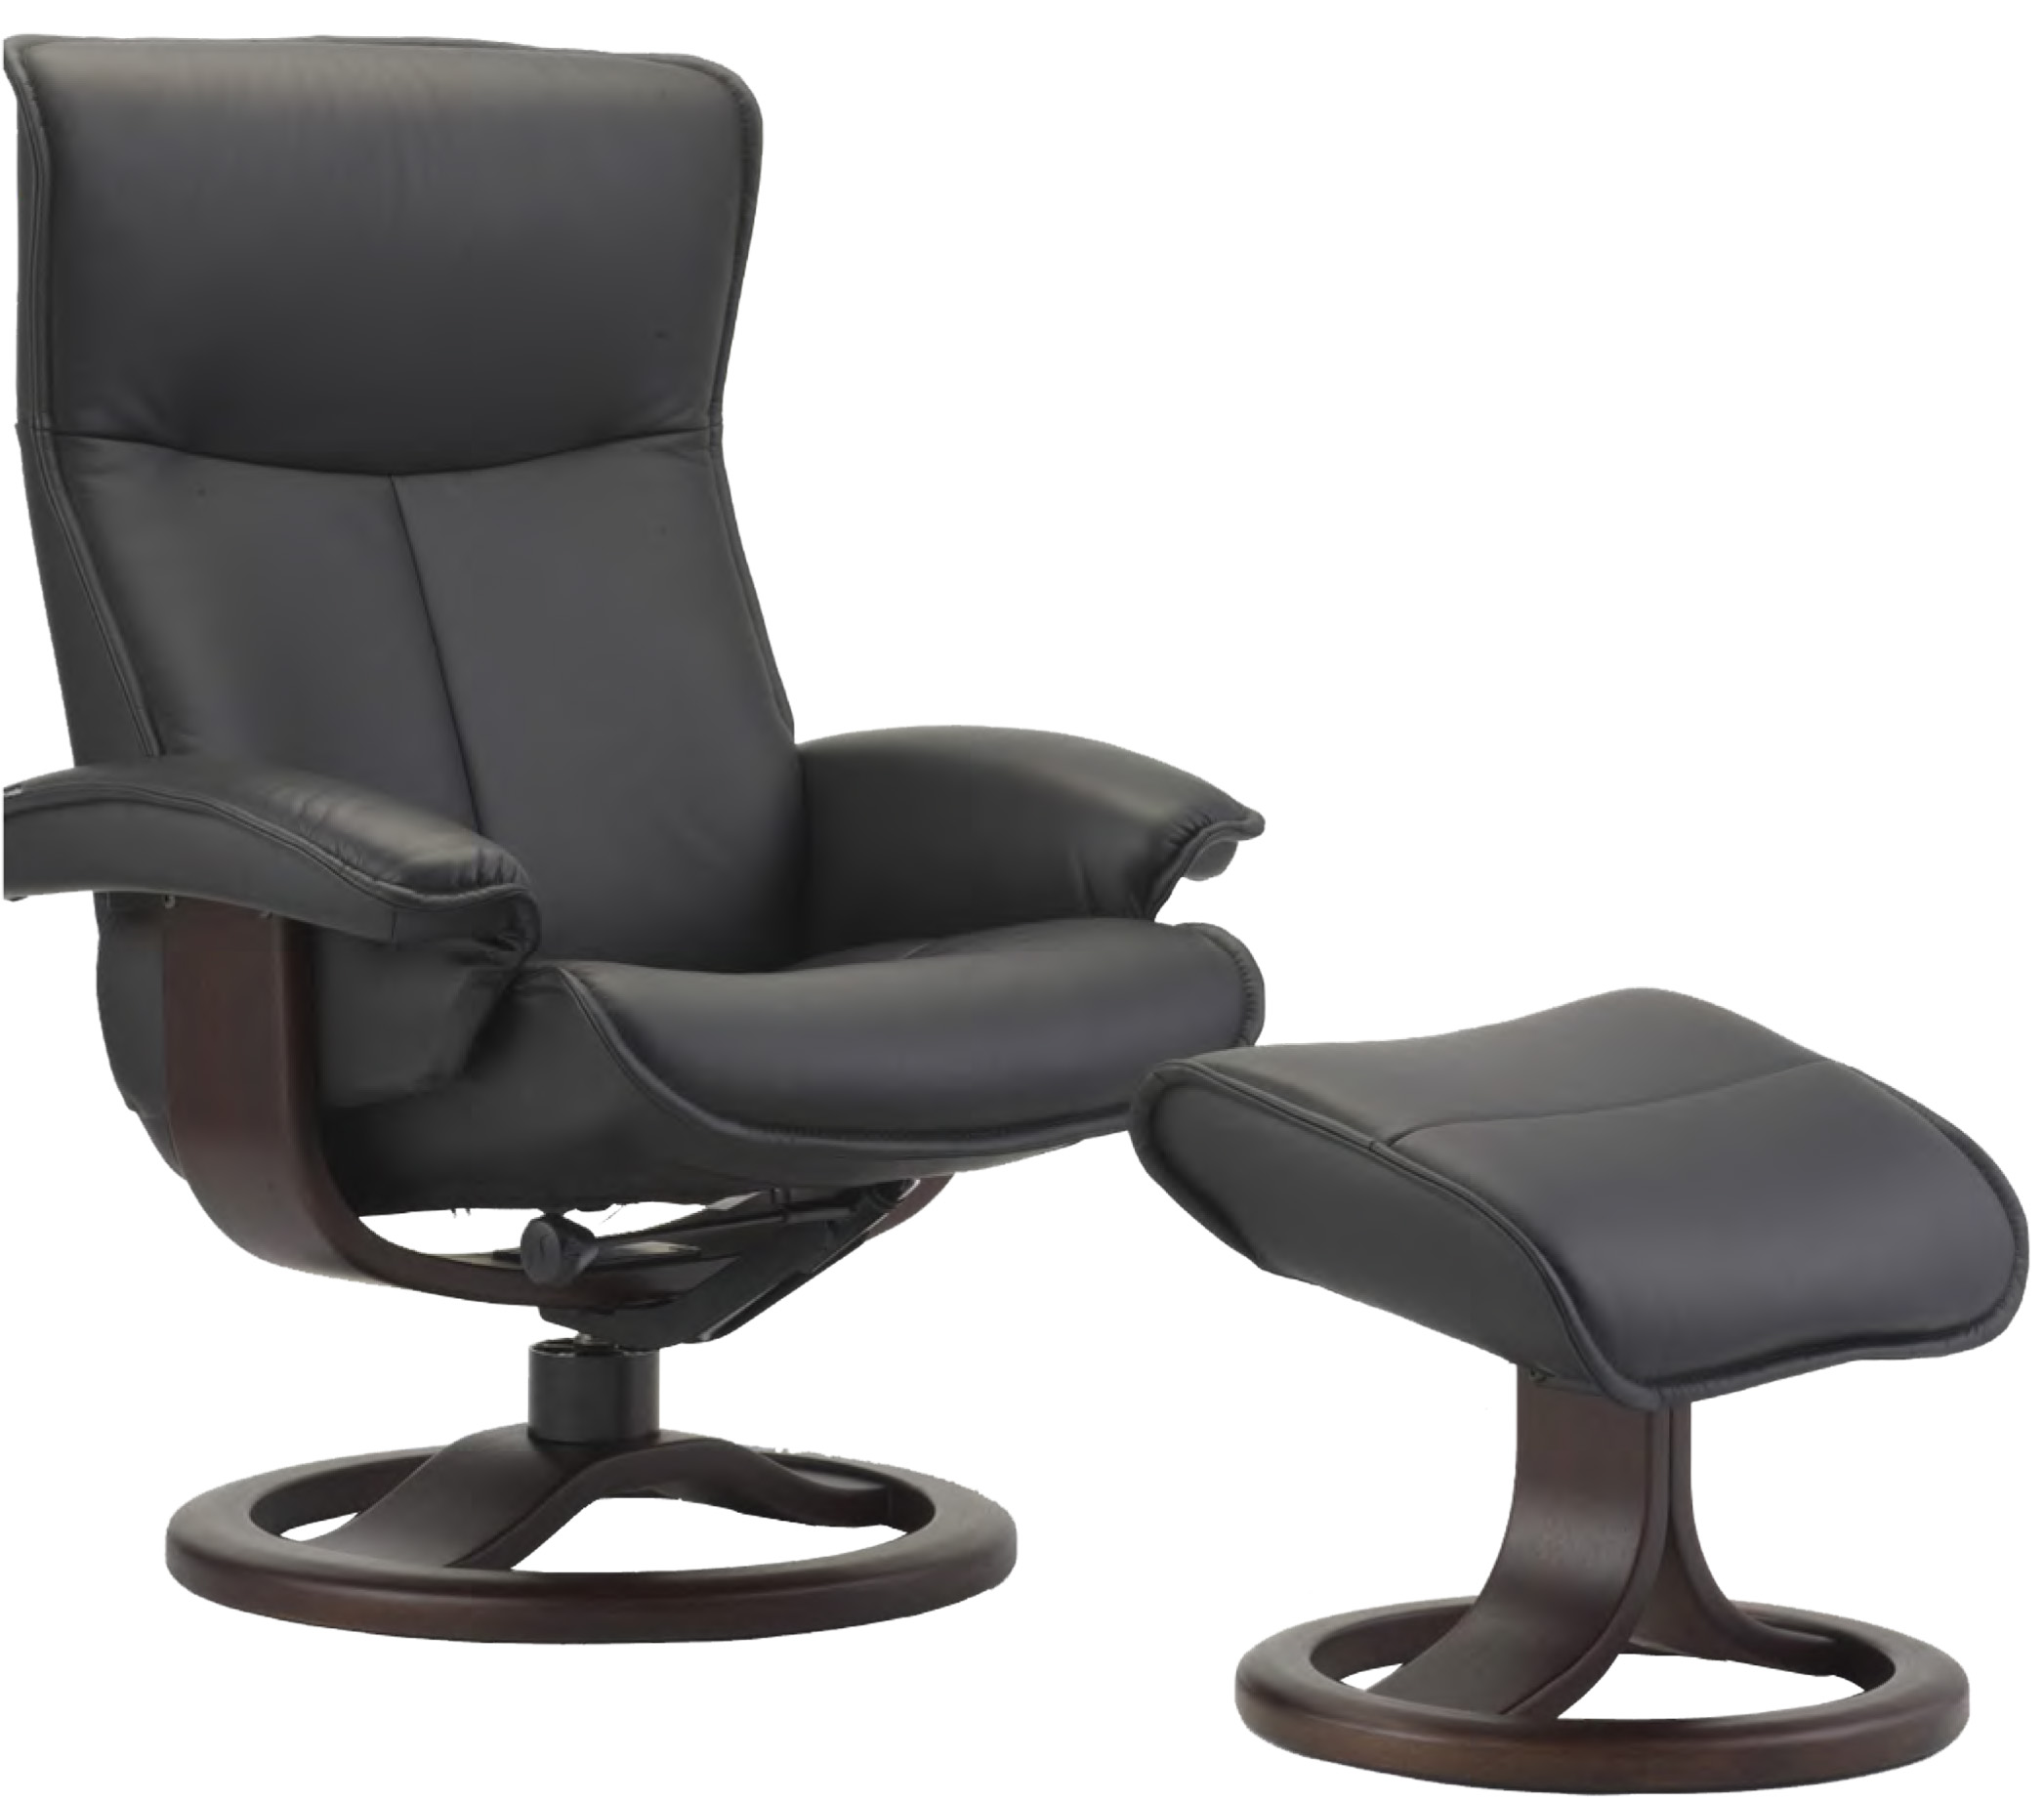 Lounge Chair With Ottoman Fjords Senator Ergonomic Leather Recliner Chair 43 Ottoman